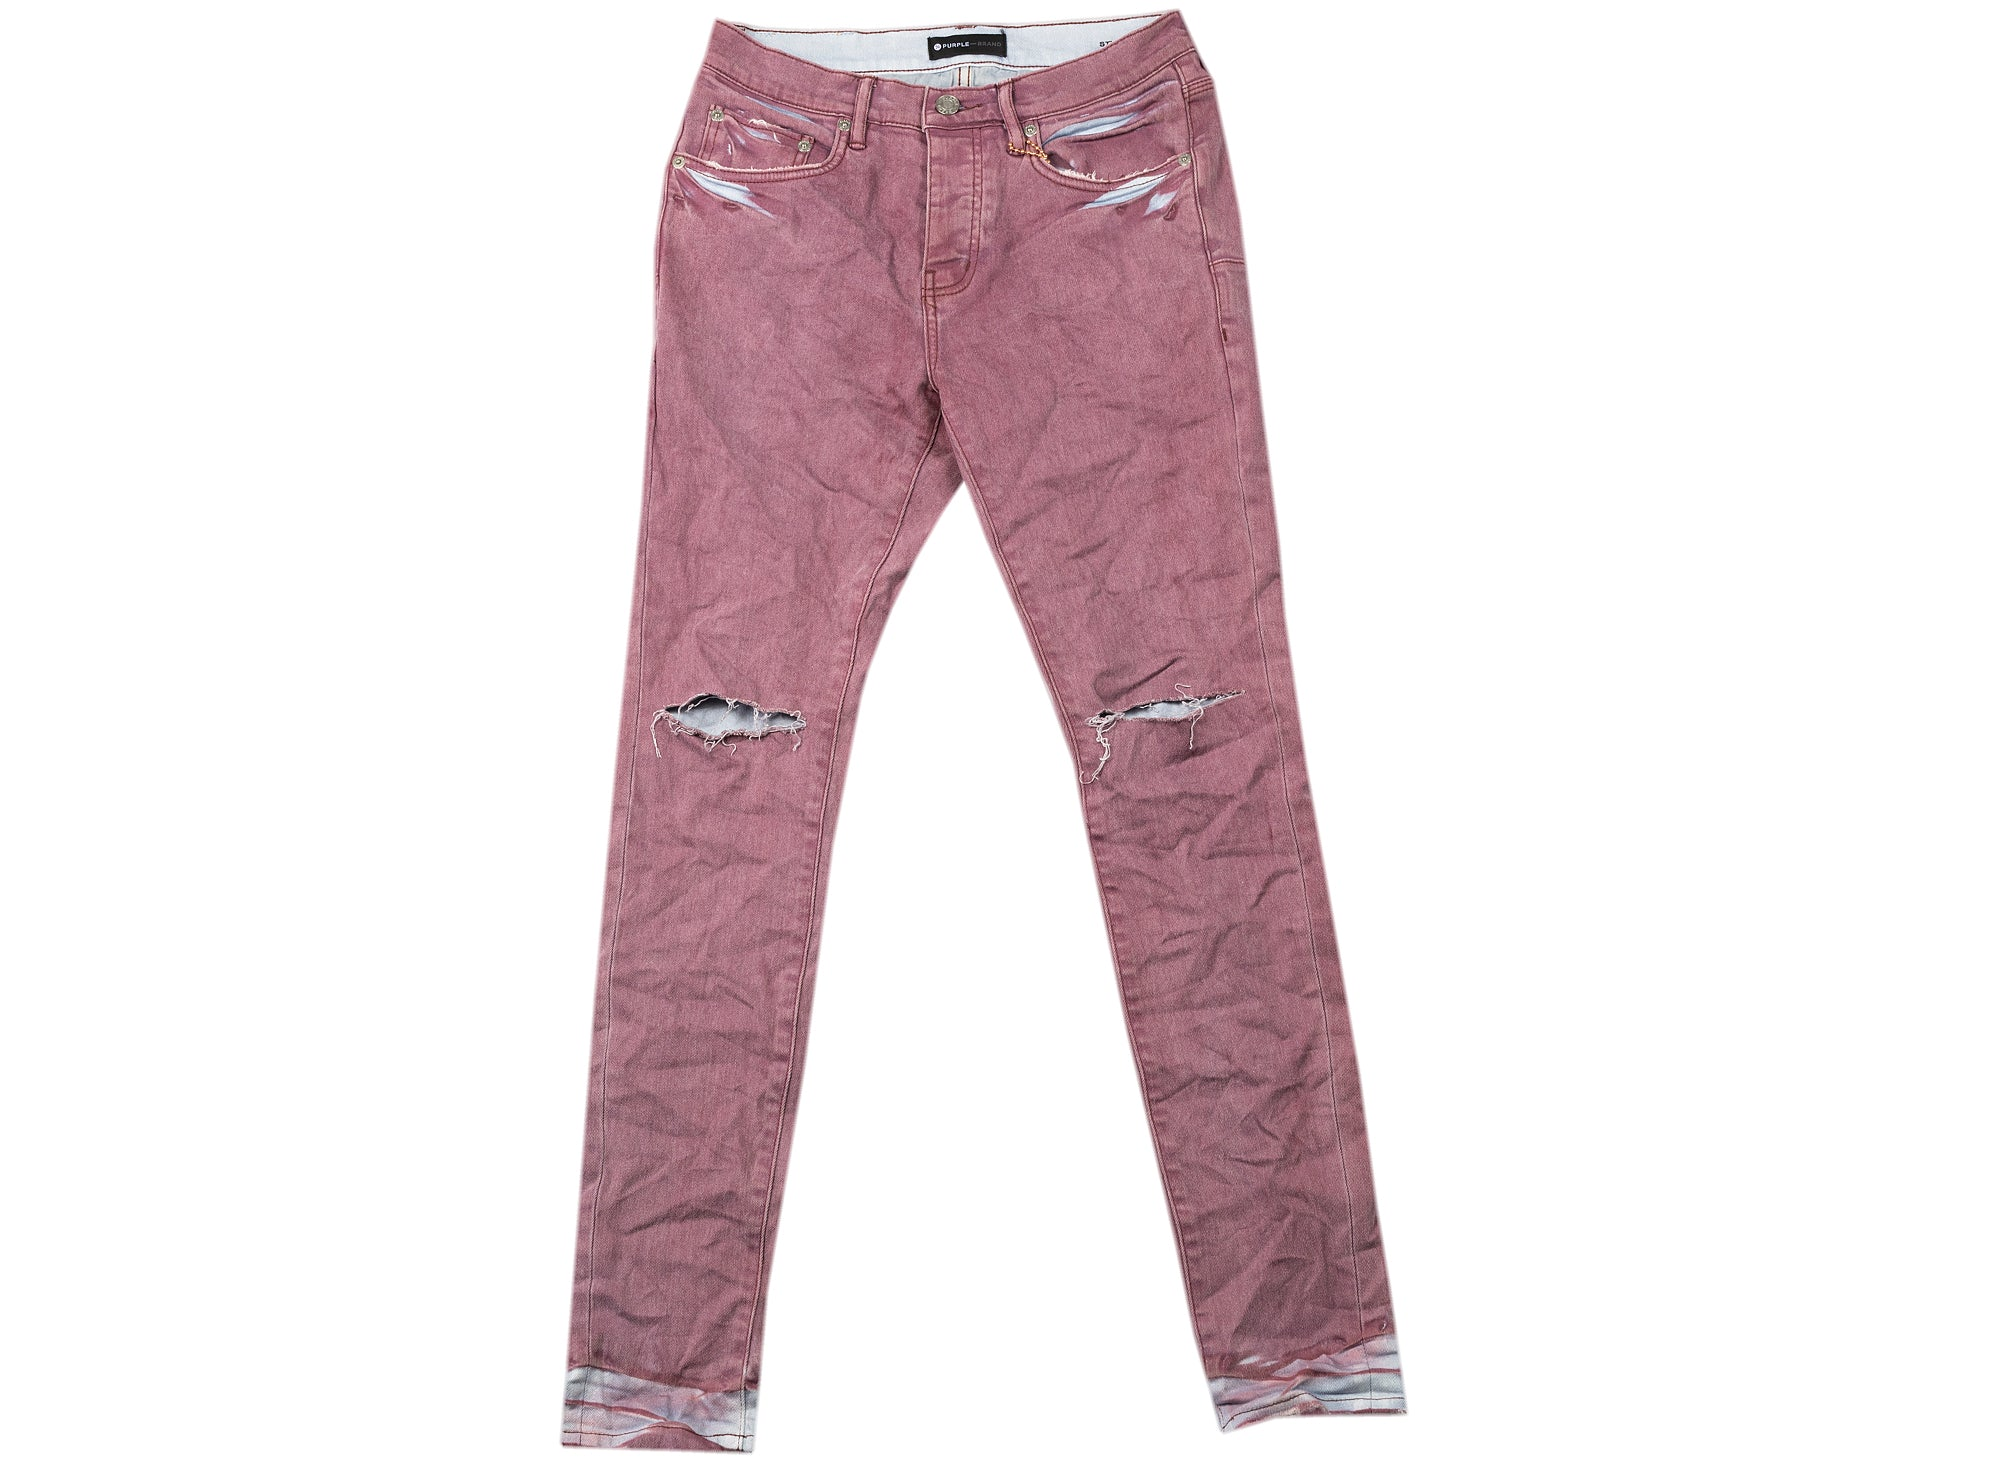 Purple Brand Coral Light Spray Jeans xld